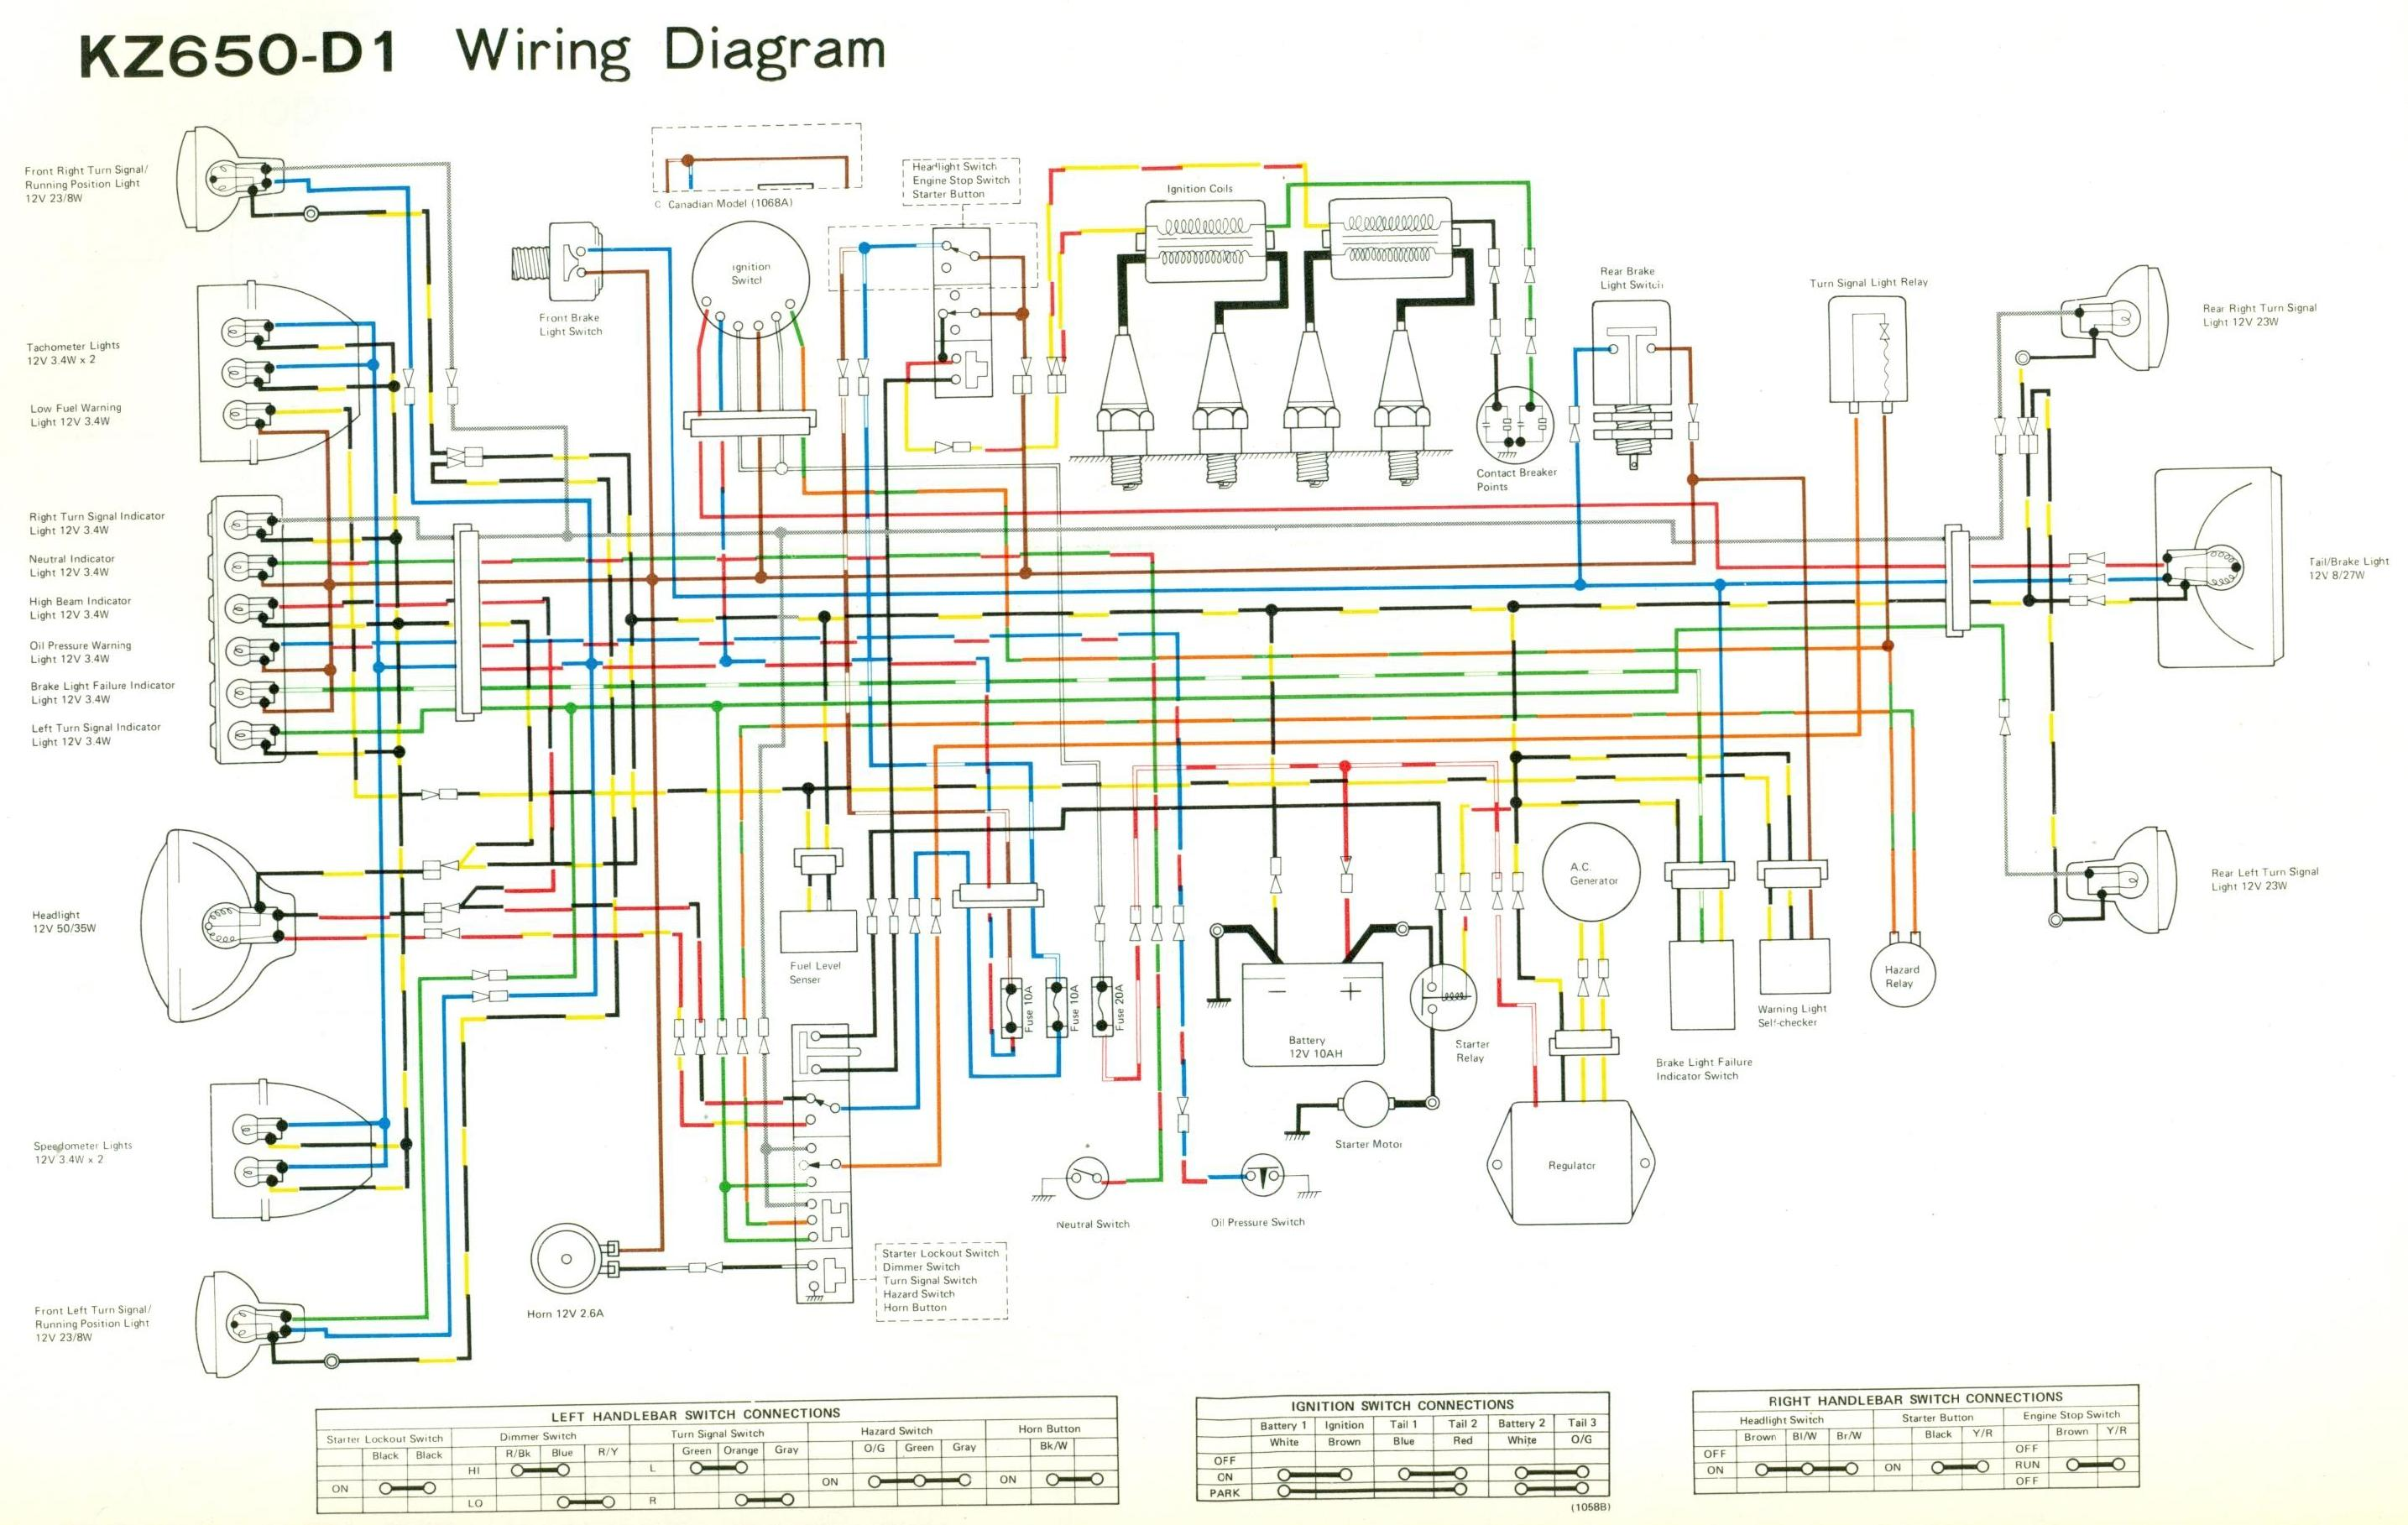 kawasaki kvf 650 wiring diagram | refund-concepti wiring diagram number -  refund-concepti.garbobar.it  garbo bar